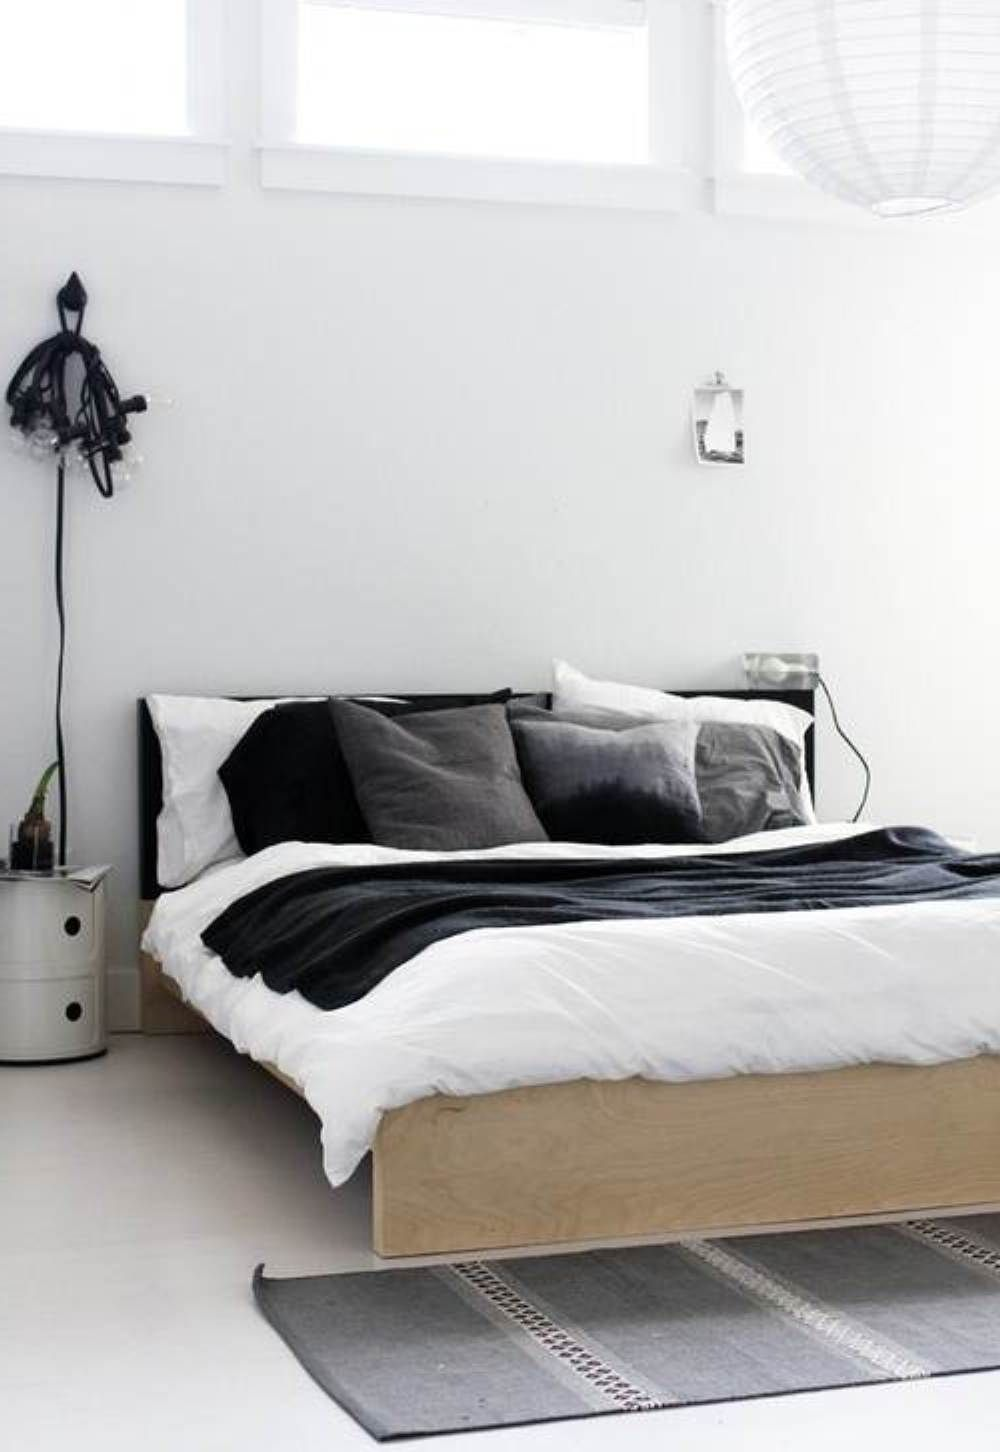 Bedroom colors for men - Sophisticated Bedroom Colors For Men Better Home And Garden